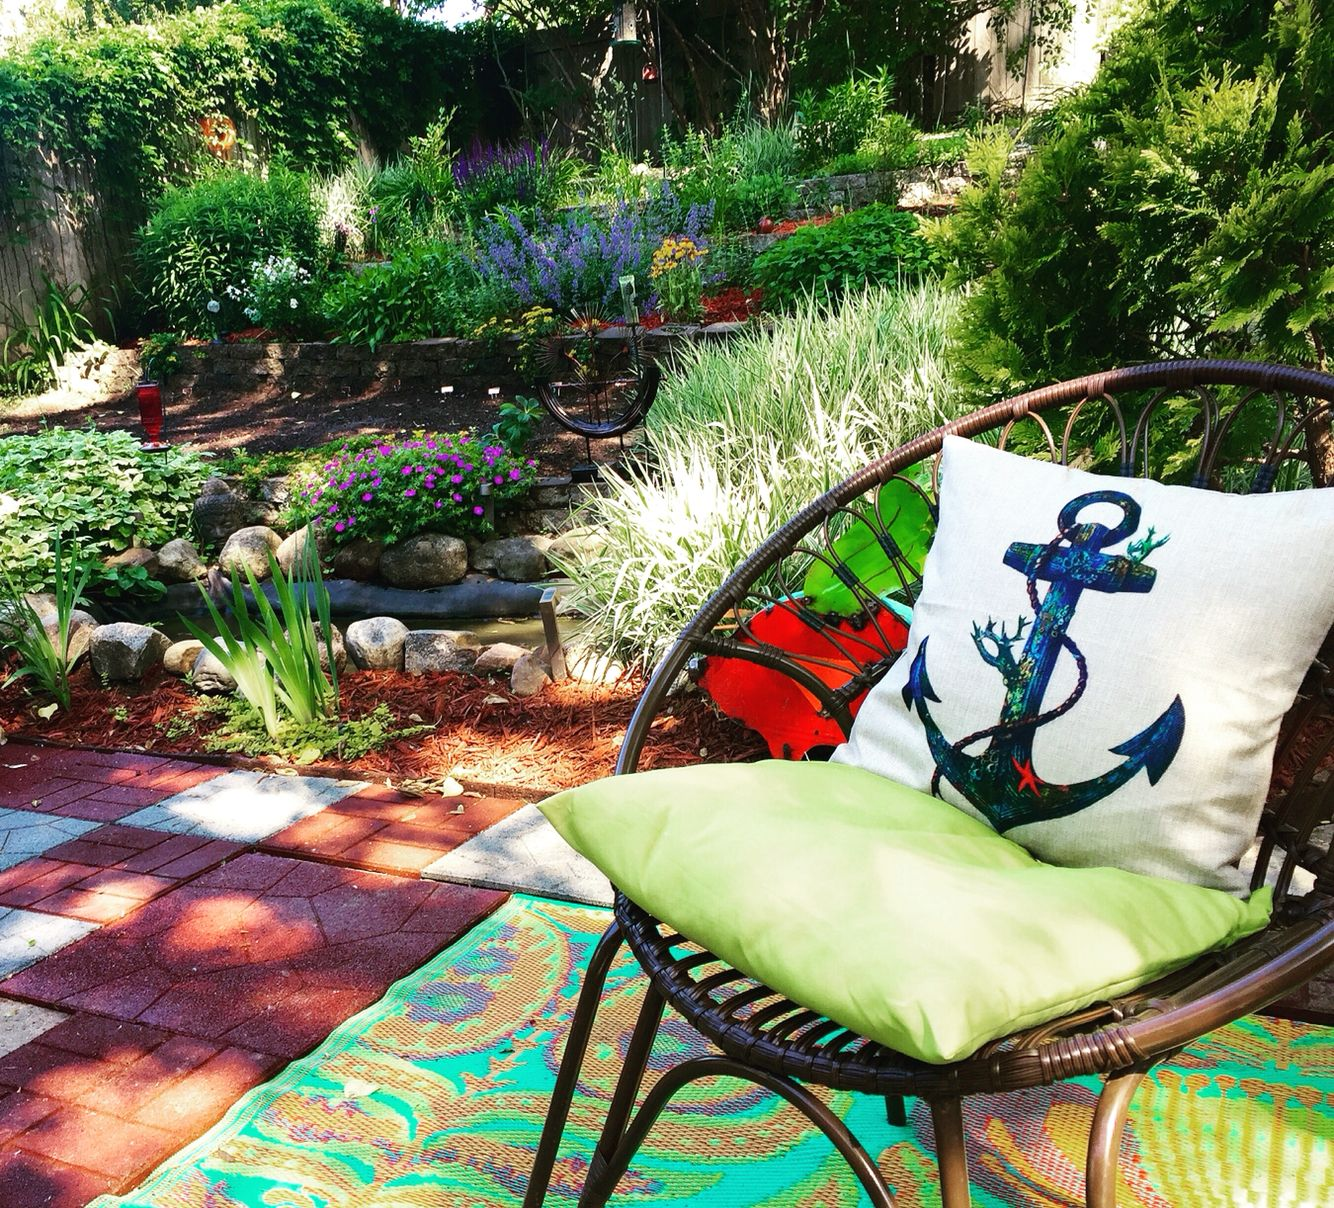 Eclectic and unique Backyard gardening and decor